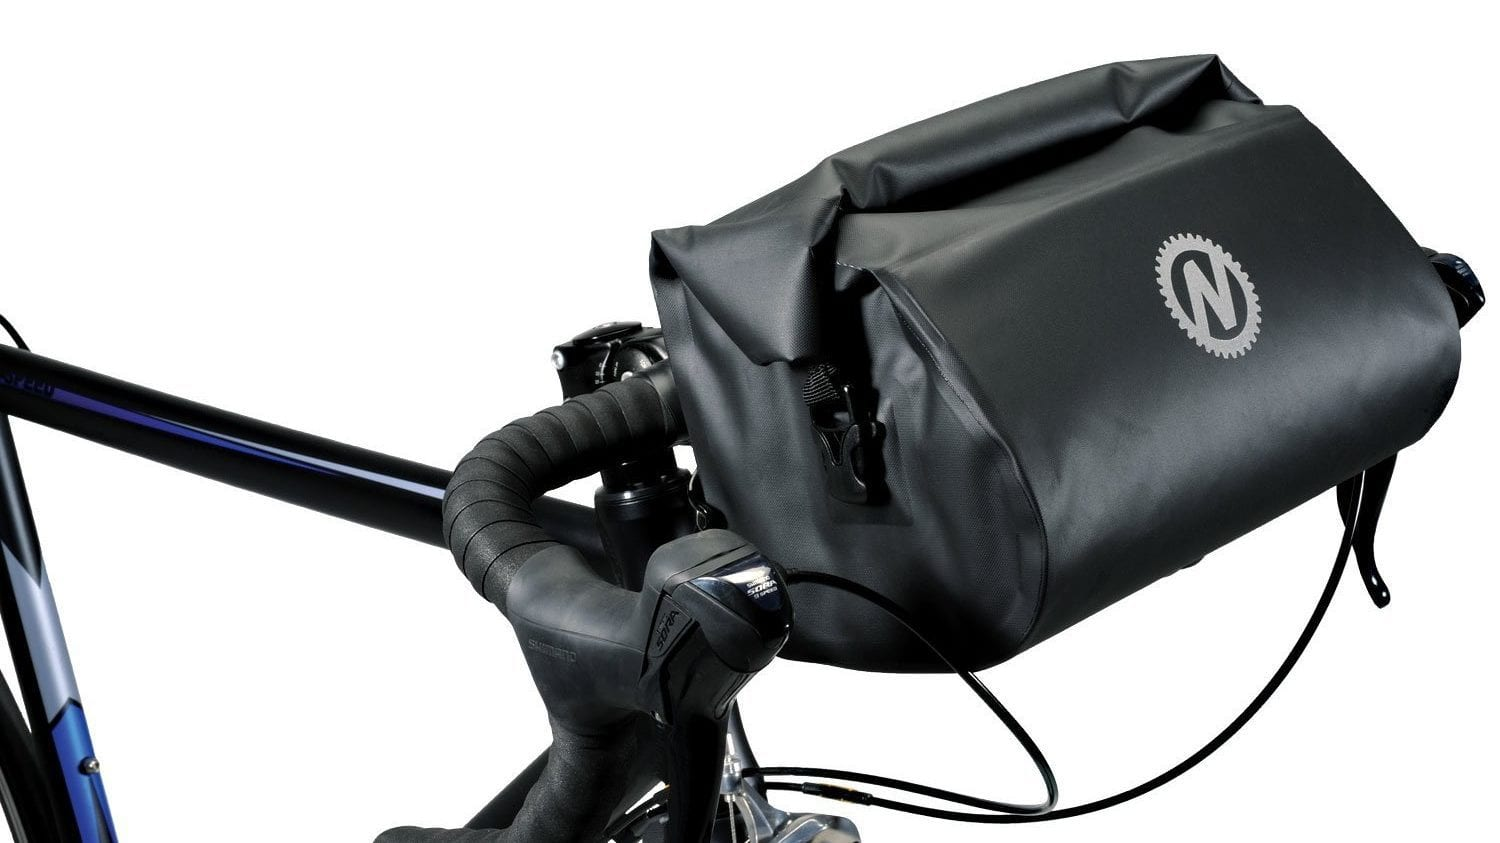 ROCK BROS Waterproof Bike Packing Front Handlebar Bags 2 Dry Packs for MTB Ro...